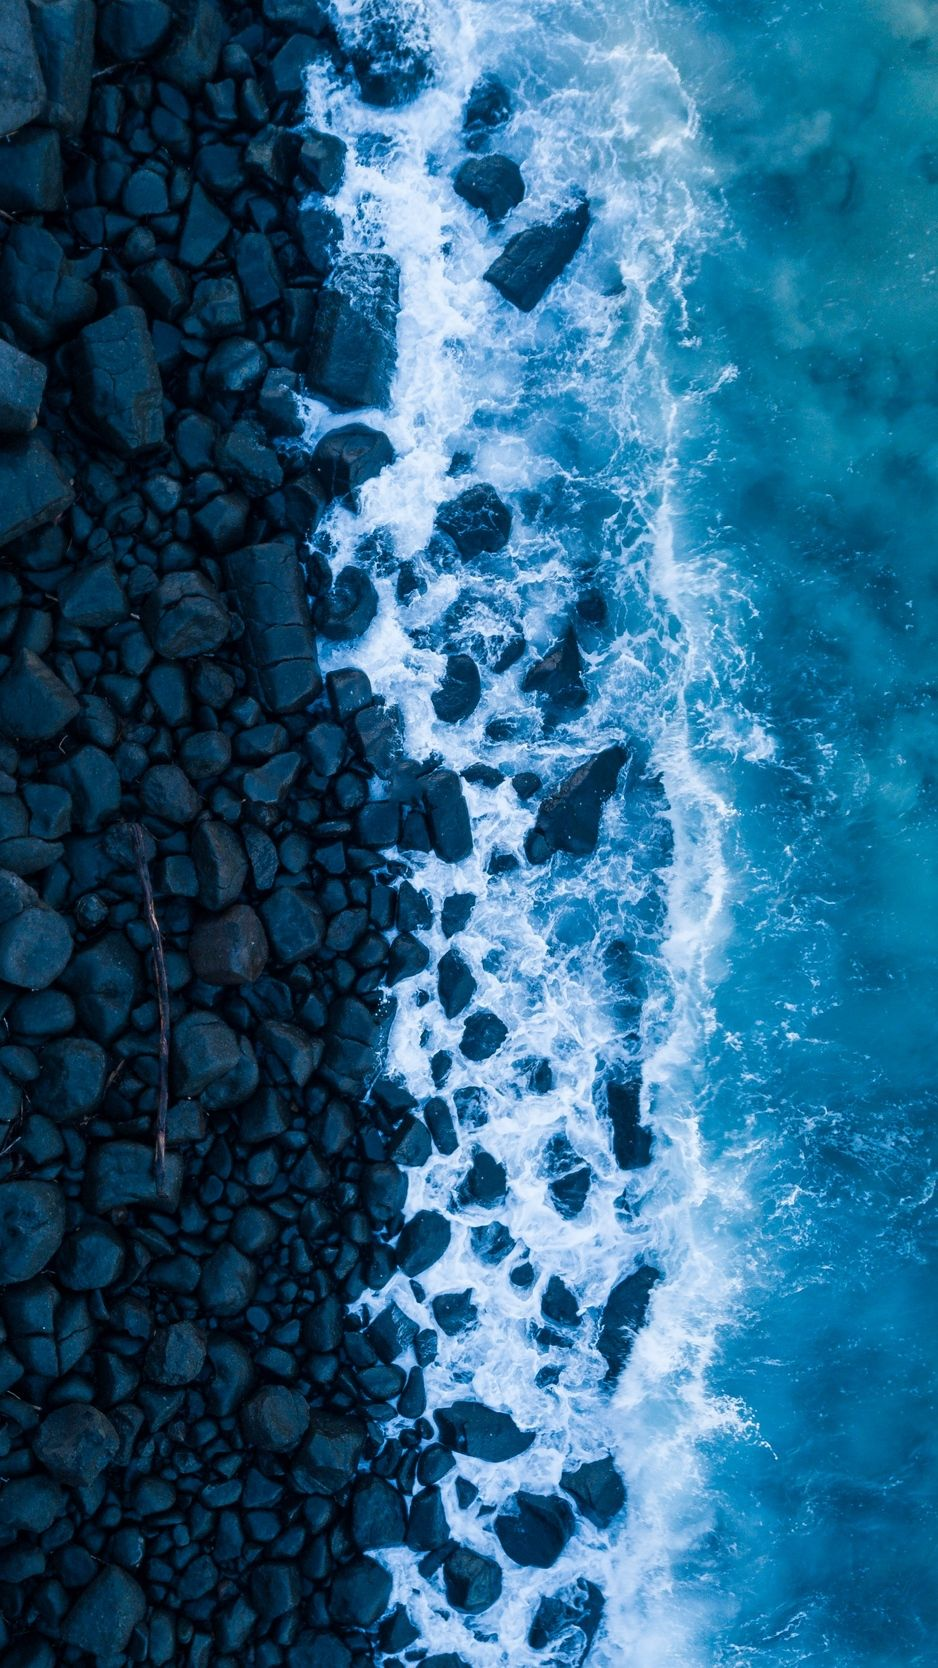 Ocean, surf, rocks, view from above, shore wallpaper